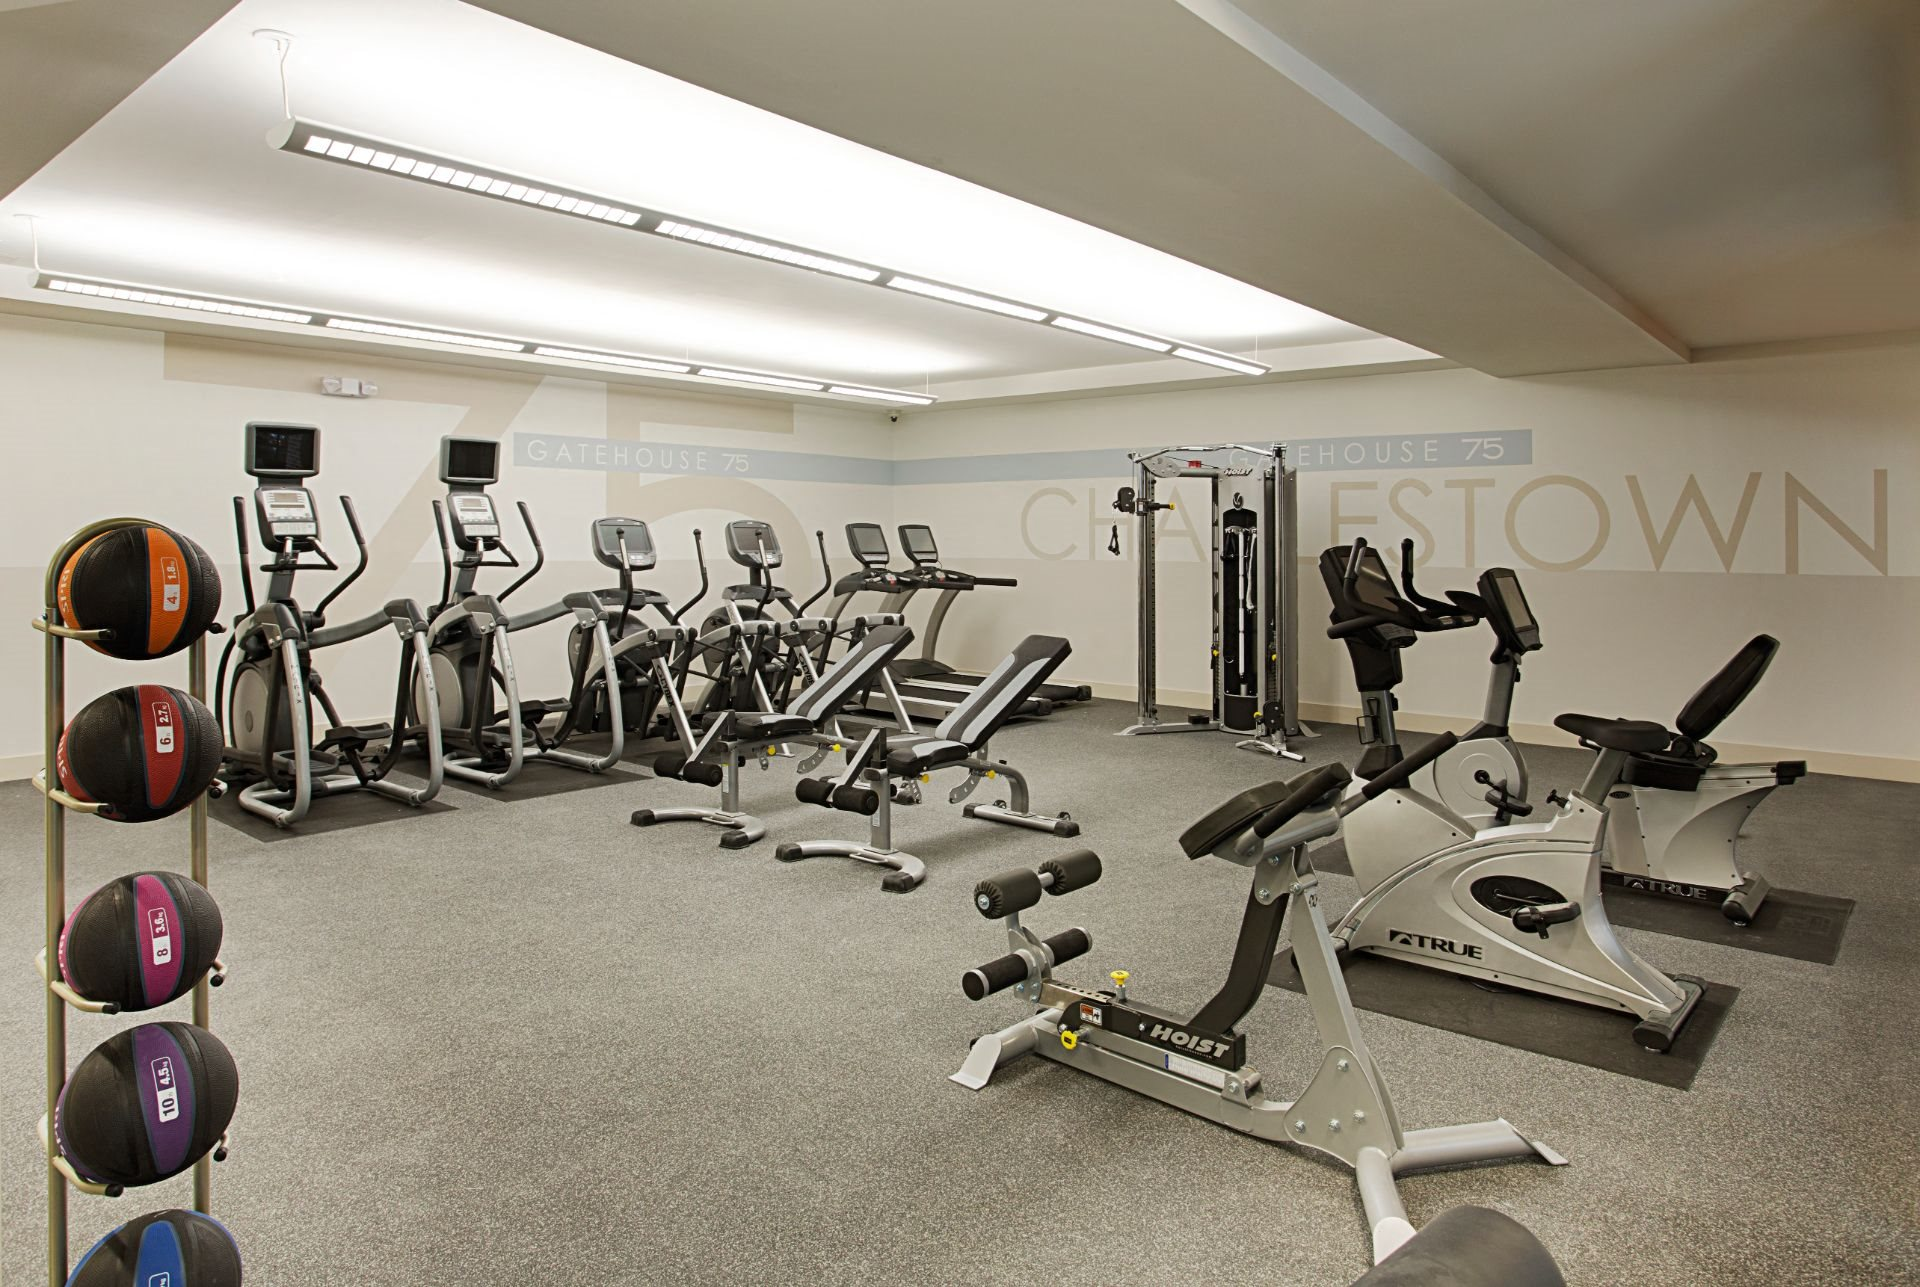 Fitness and Cardio Center with Treadmills, Elliptical Machines, Bikes, Leg Weights and Kettle Balls at Gatehouse 75, Charlestown